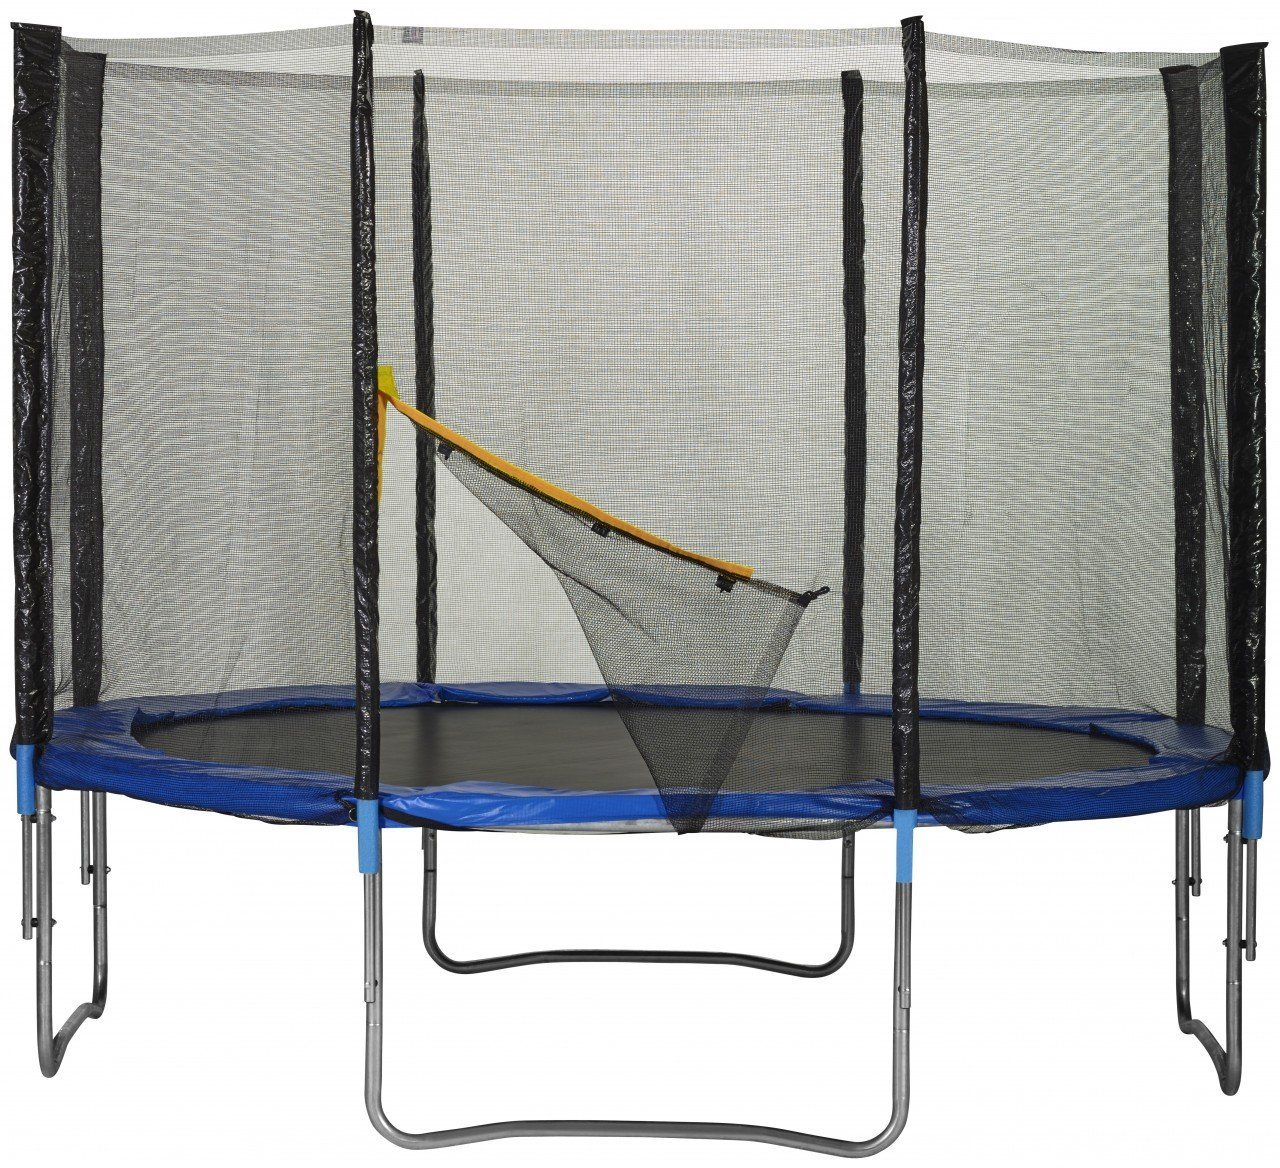 kleines trampolin mini trampolin cm in grn with kleines. Black Bedroom Furniture Sets. Home Design Ideas